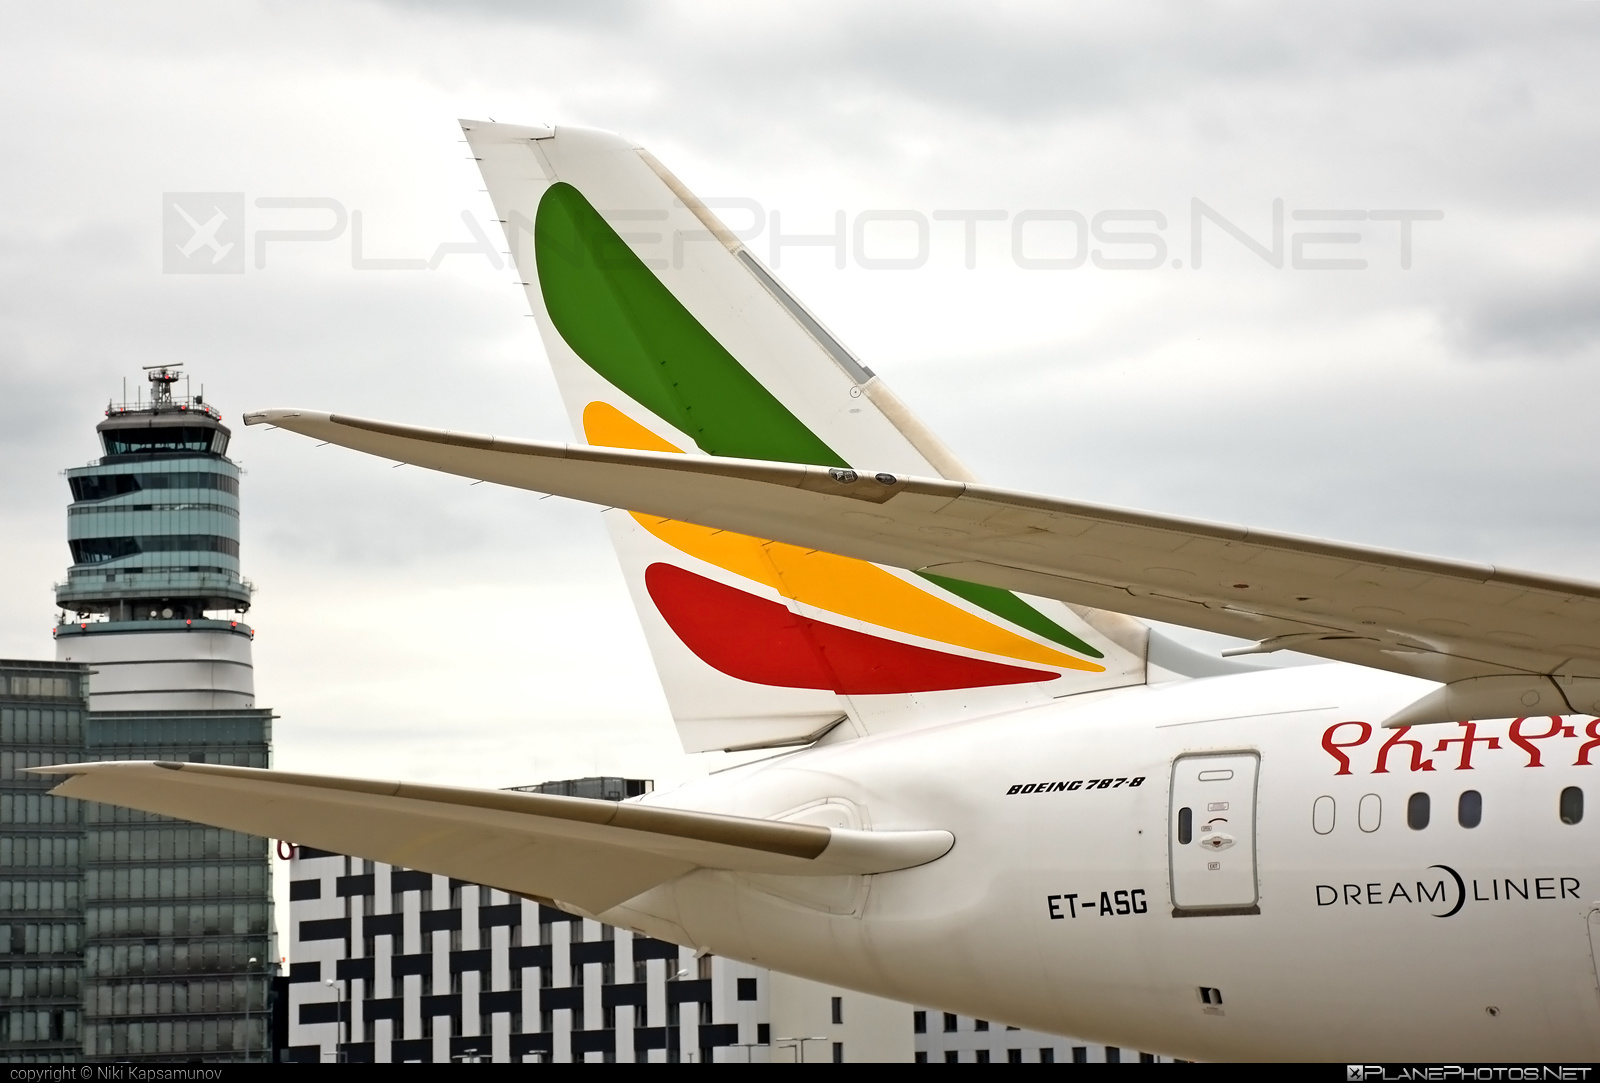 Boeing 787-8 Dreamliner - ET-ASG operated by Ethiopian Airlines #b787 #boeing #boeing787 #dreamliner #ethiopianairlines